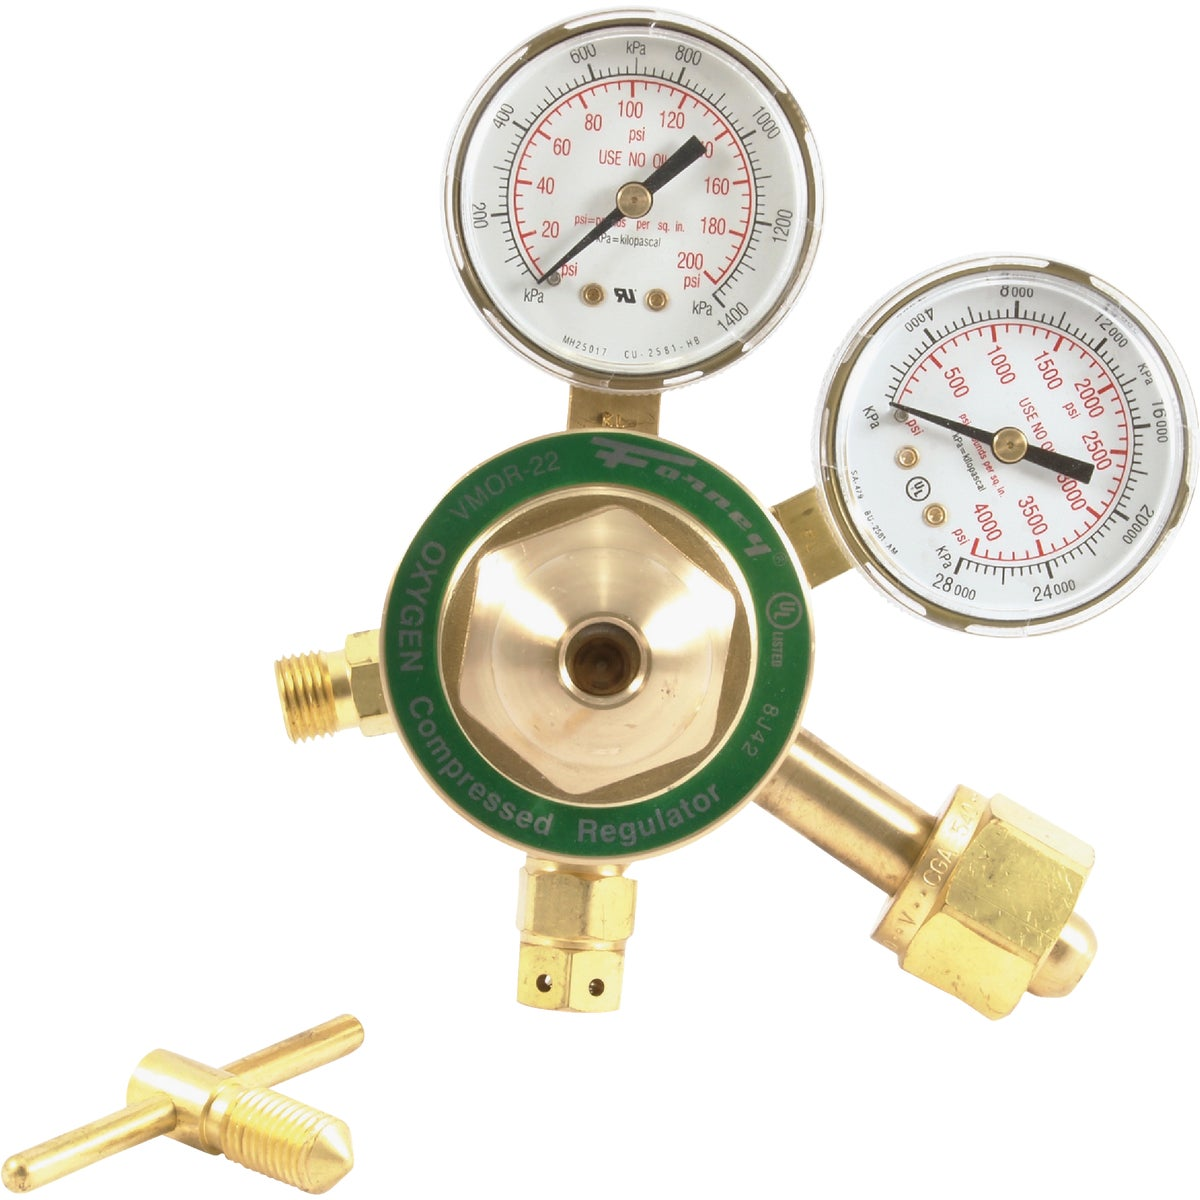 MED OXYGEN REGULATOR - 87090 by Forney Industries